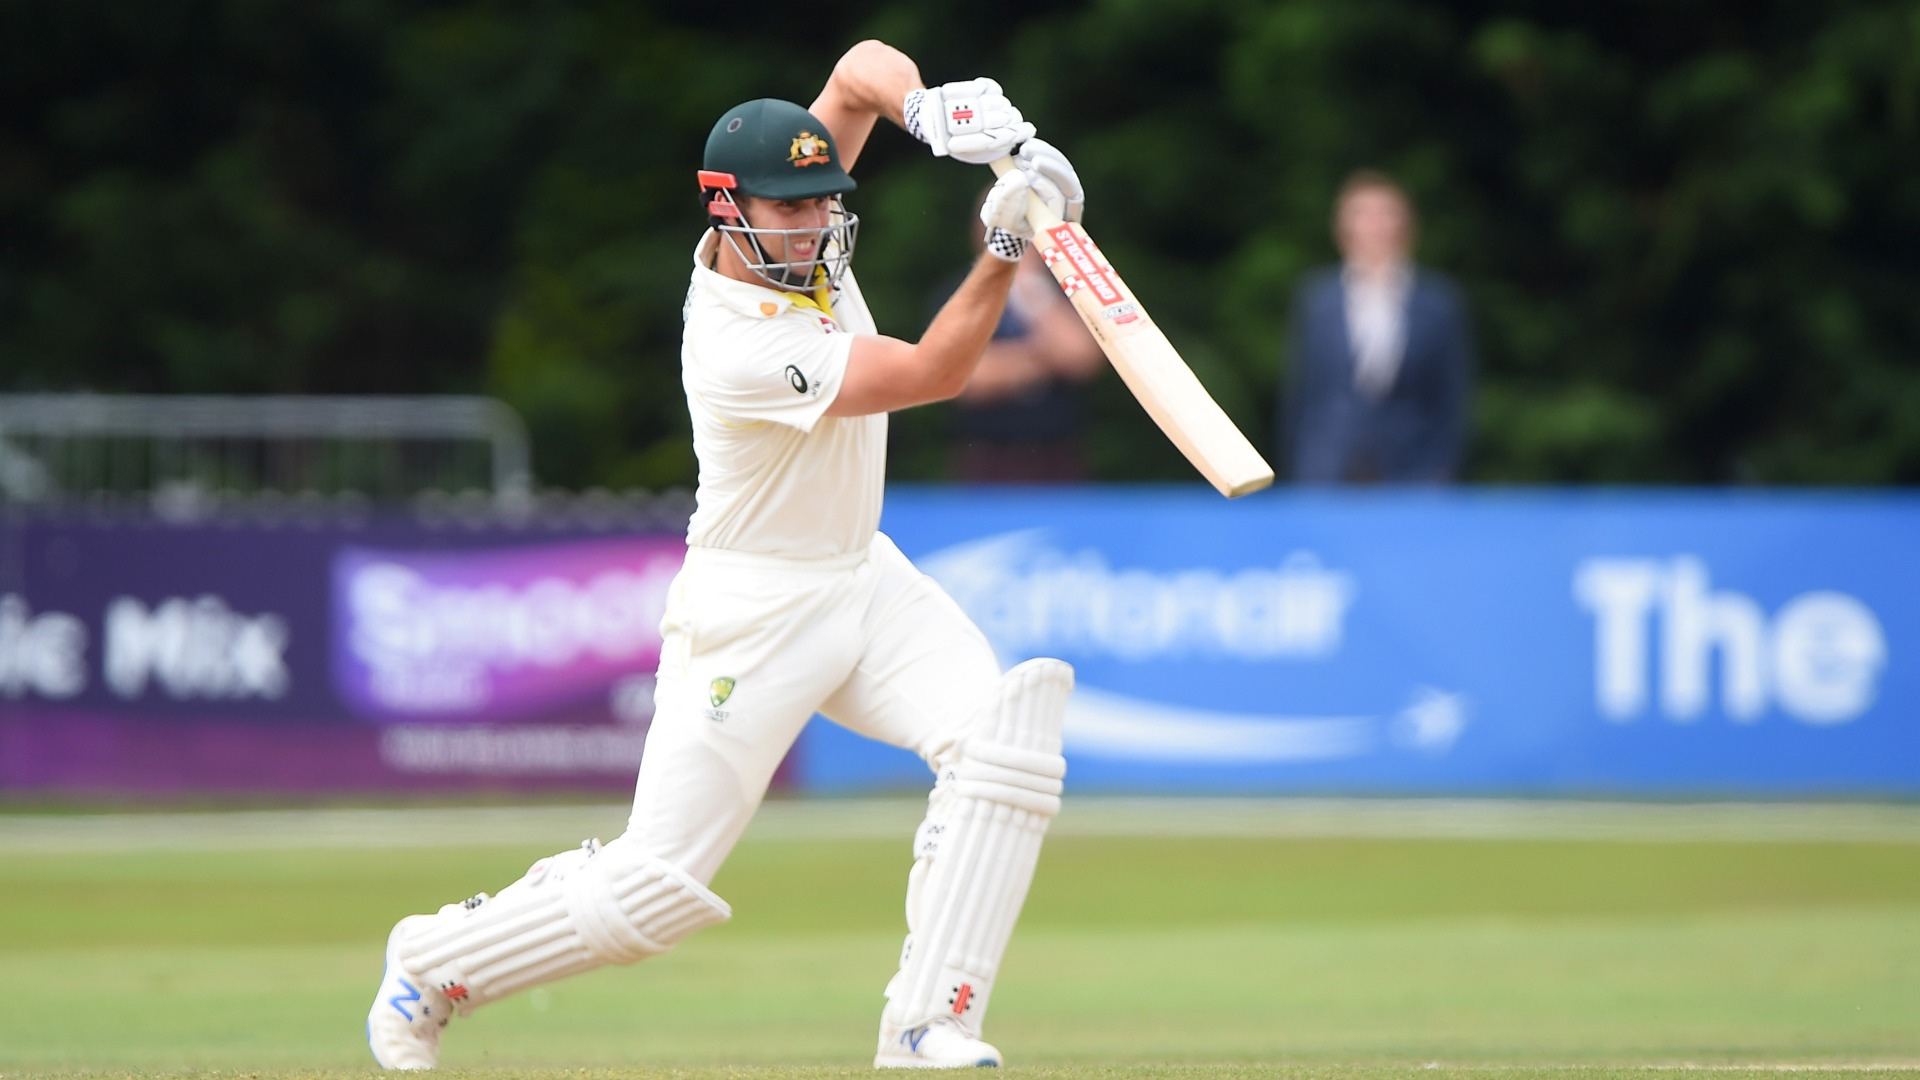 Ashes 2019: Australia considering changes as Marsh makes case